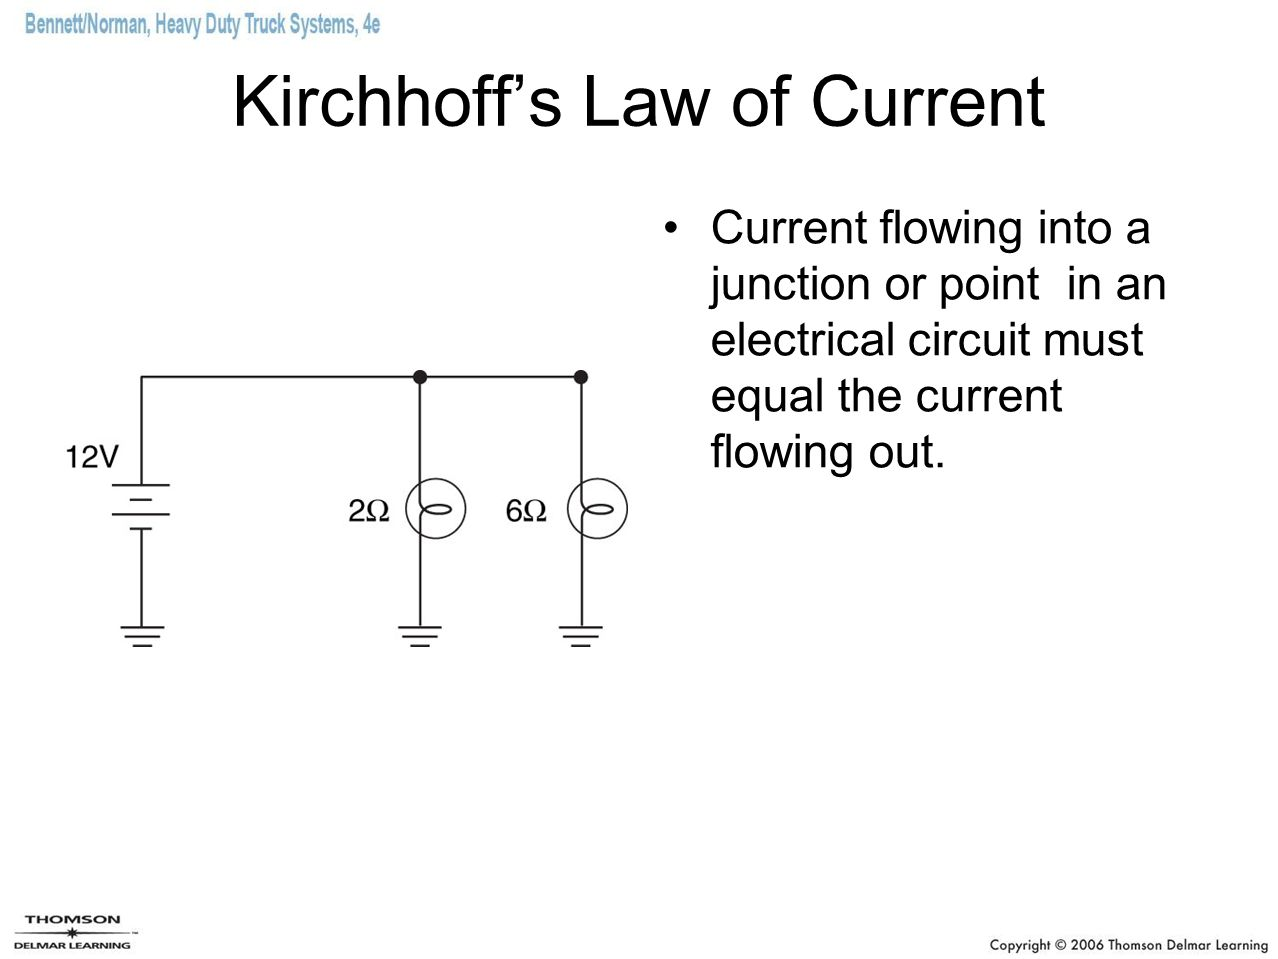 Kirchhoff's Law of Current